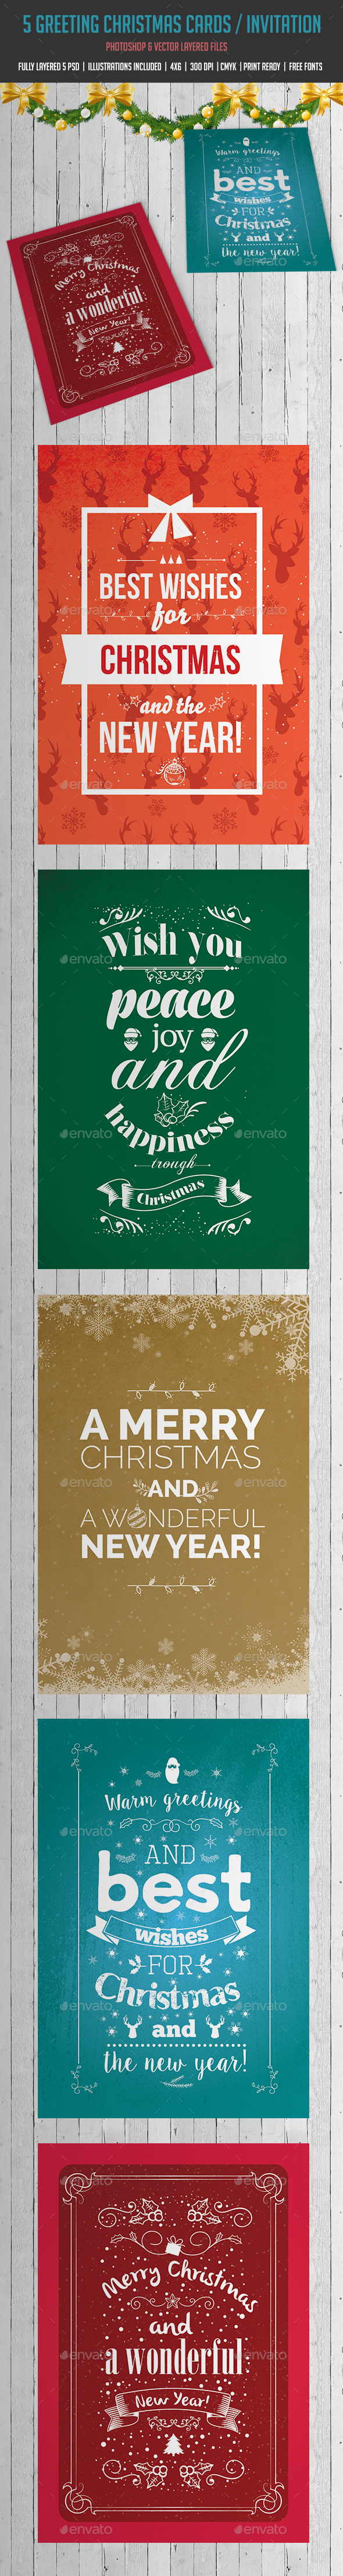 Christmas Cards - Greeting Cards Cards & Invites